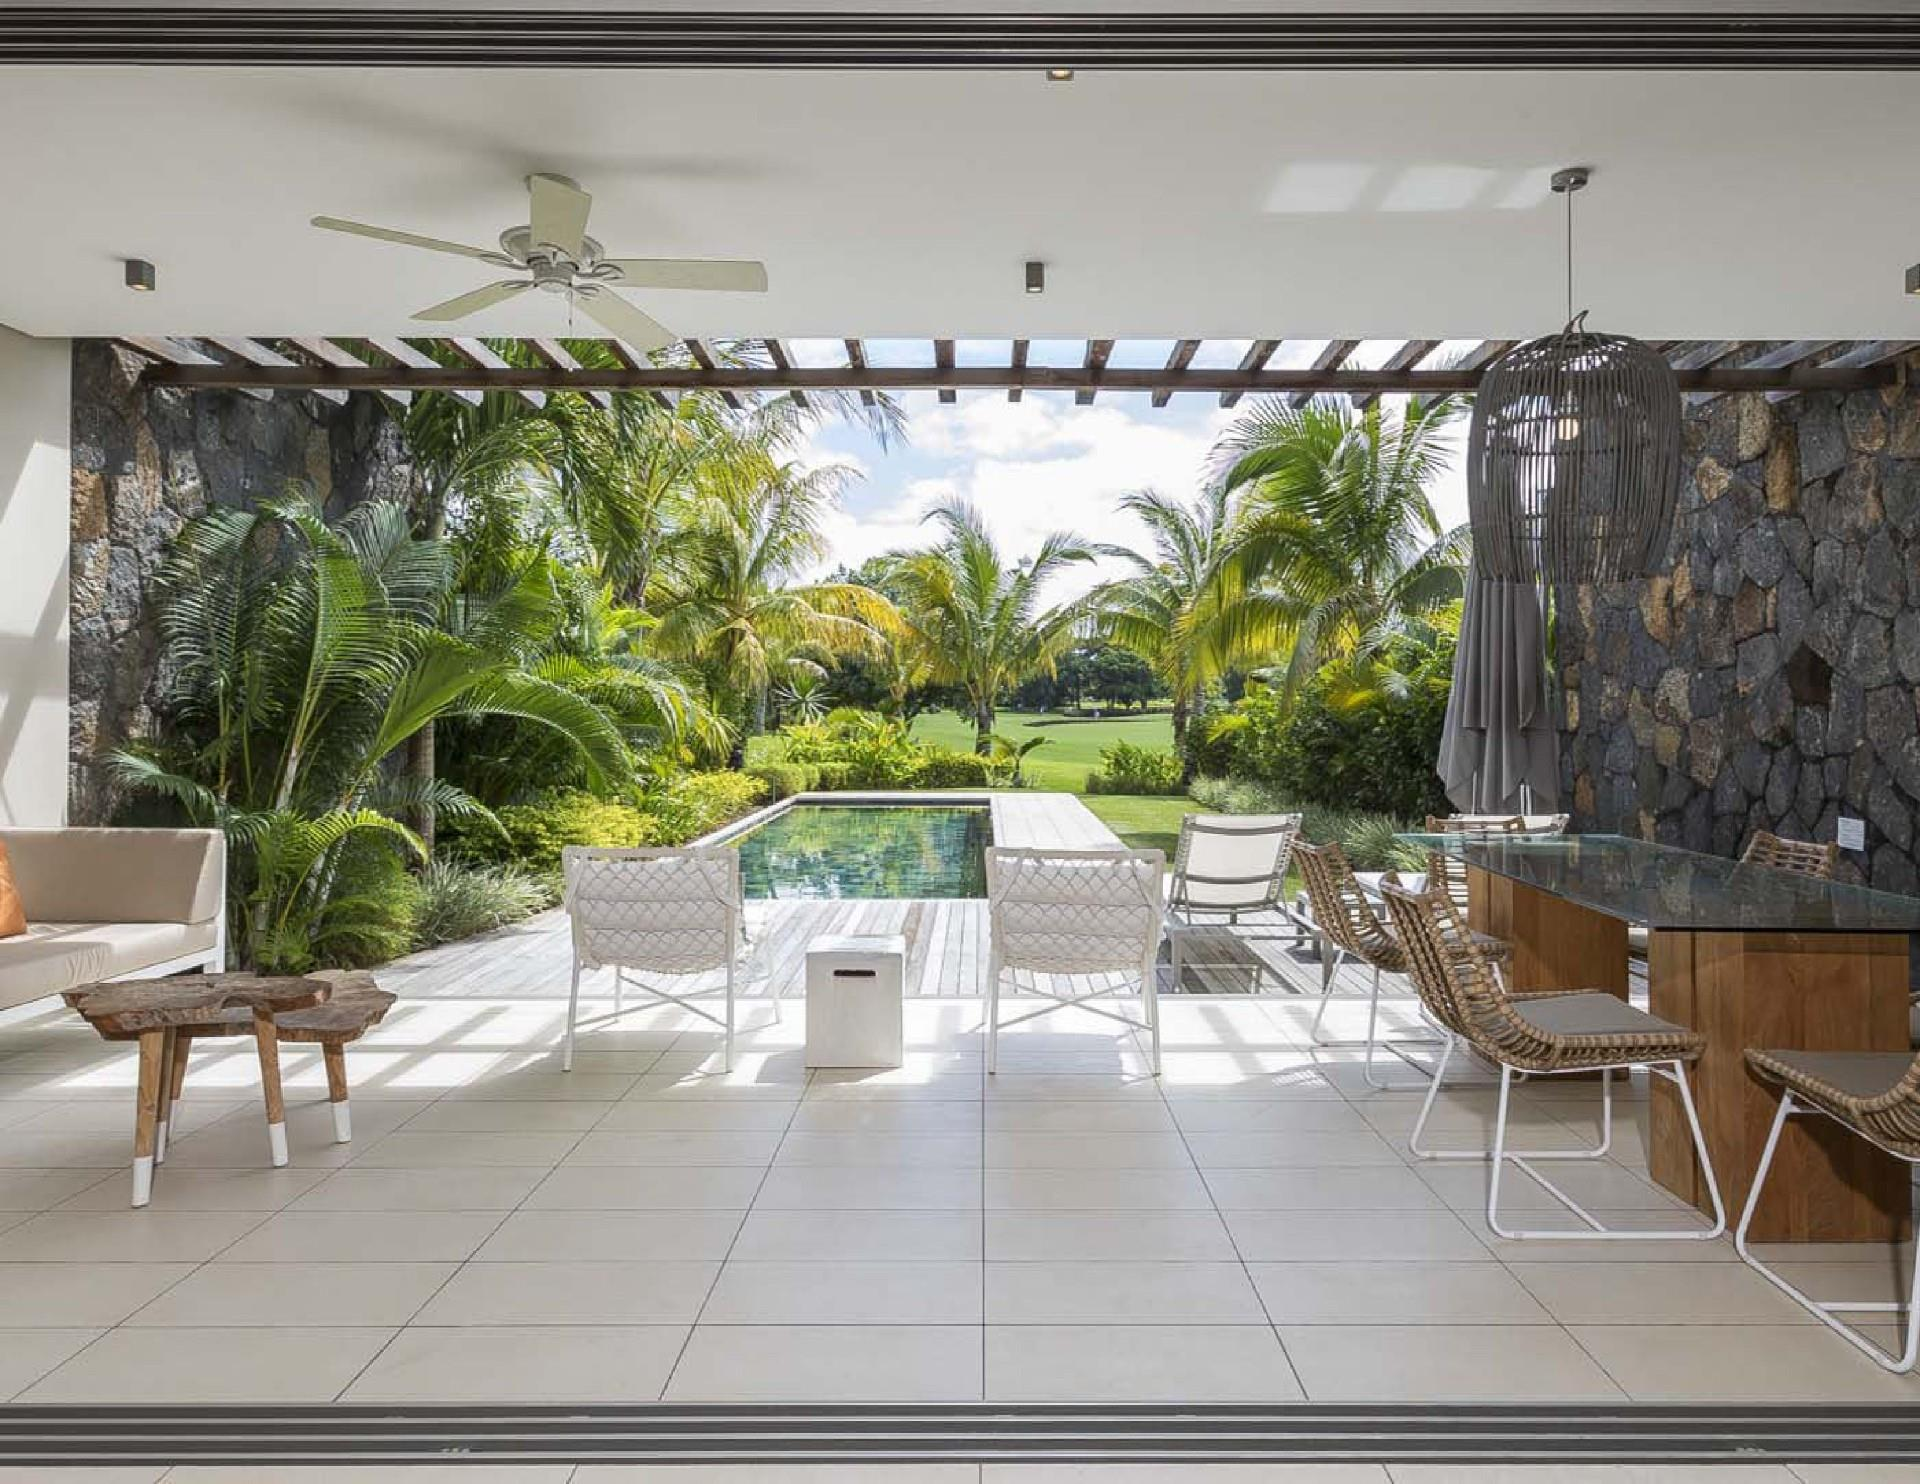 3 Bedroom Apartment / Flat For Sale in Beau Champ